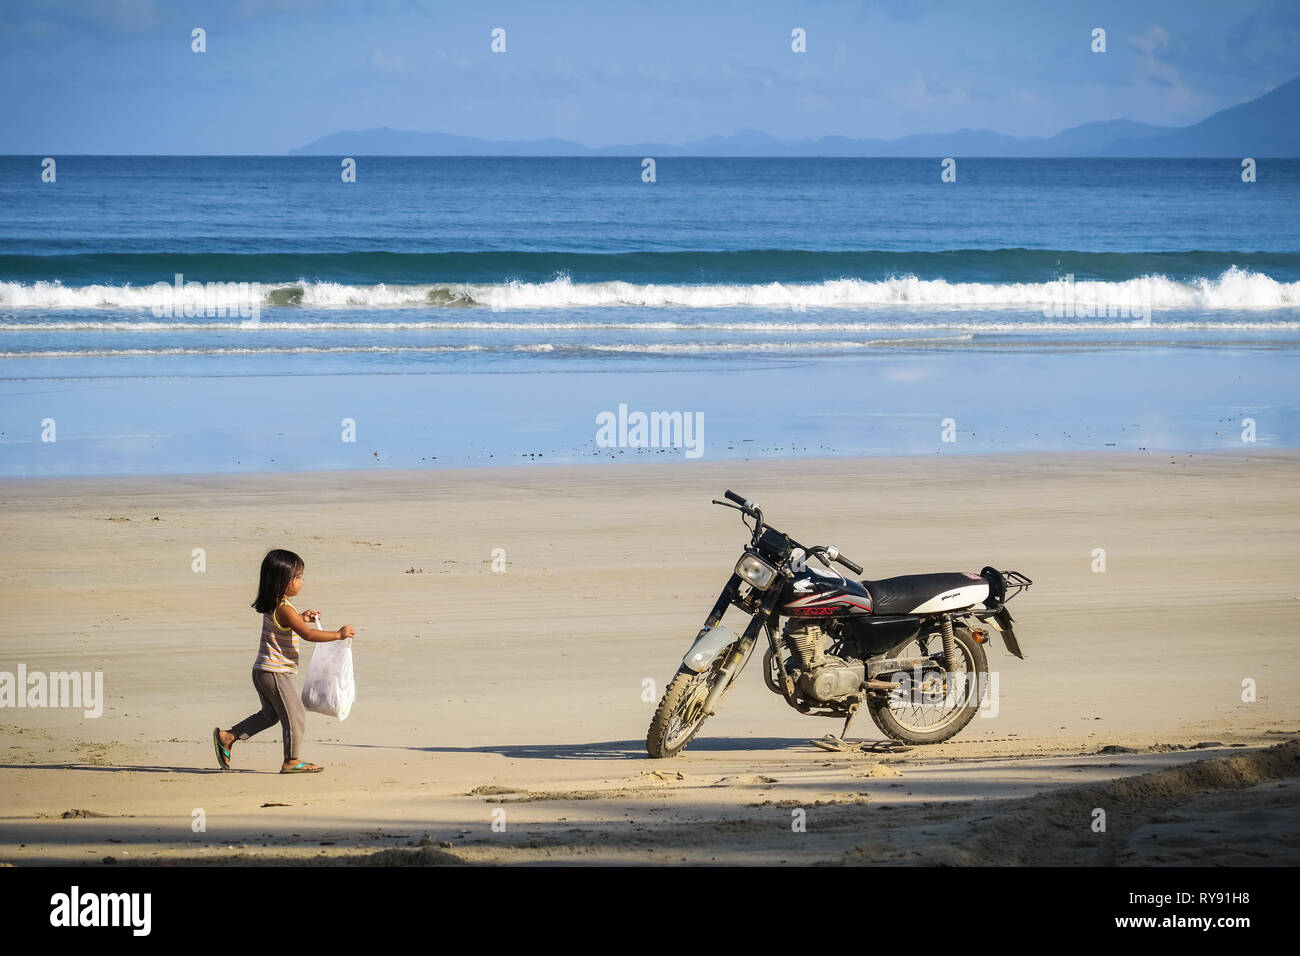 Little Filipino girl hangs a bag a bag on an old motorcycle in the sand - San Vicente Long Beach, Palawan - Philippines - Stock Image